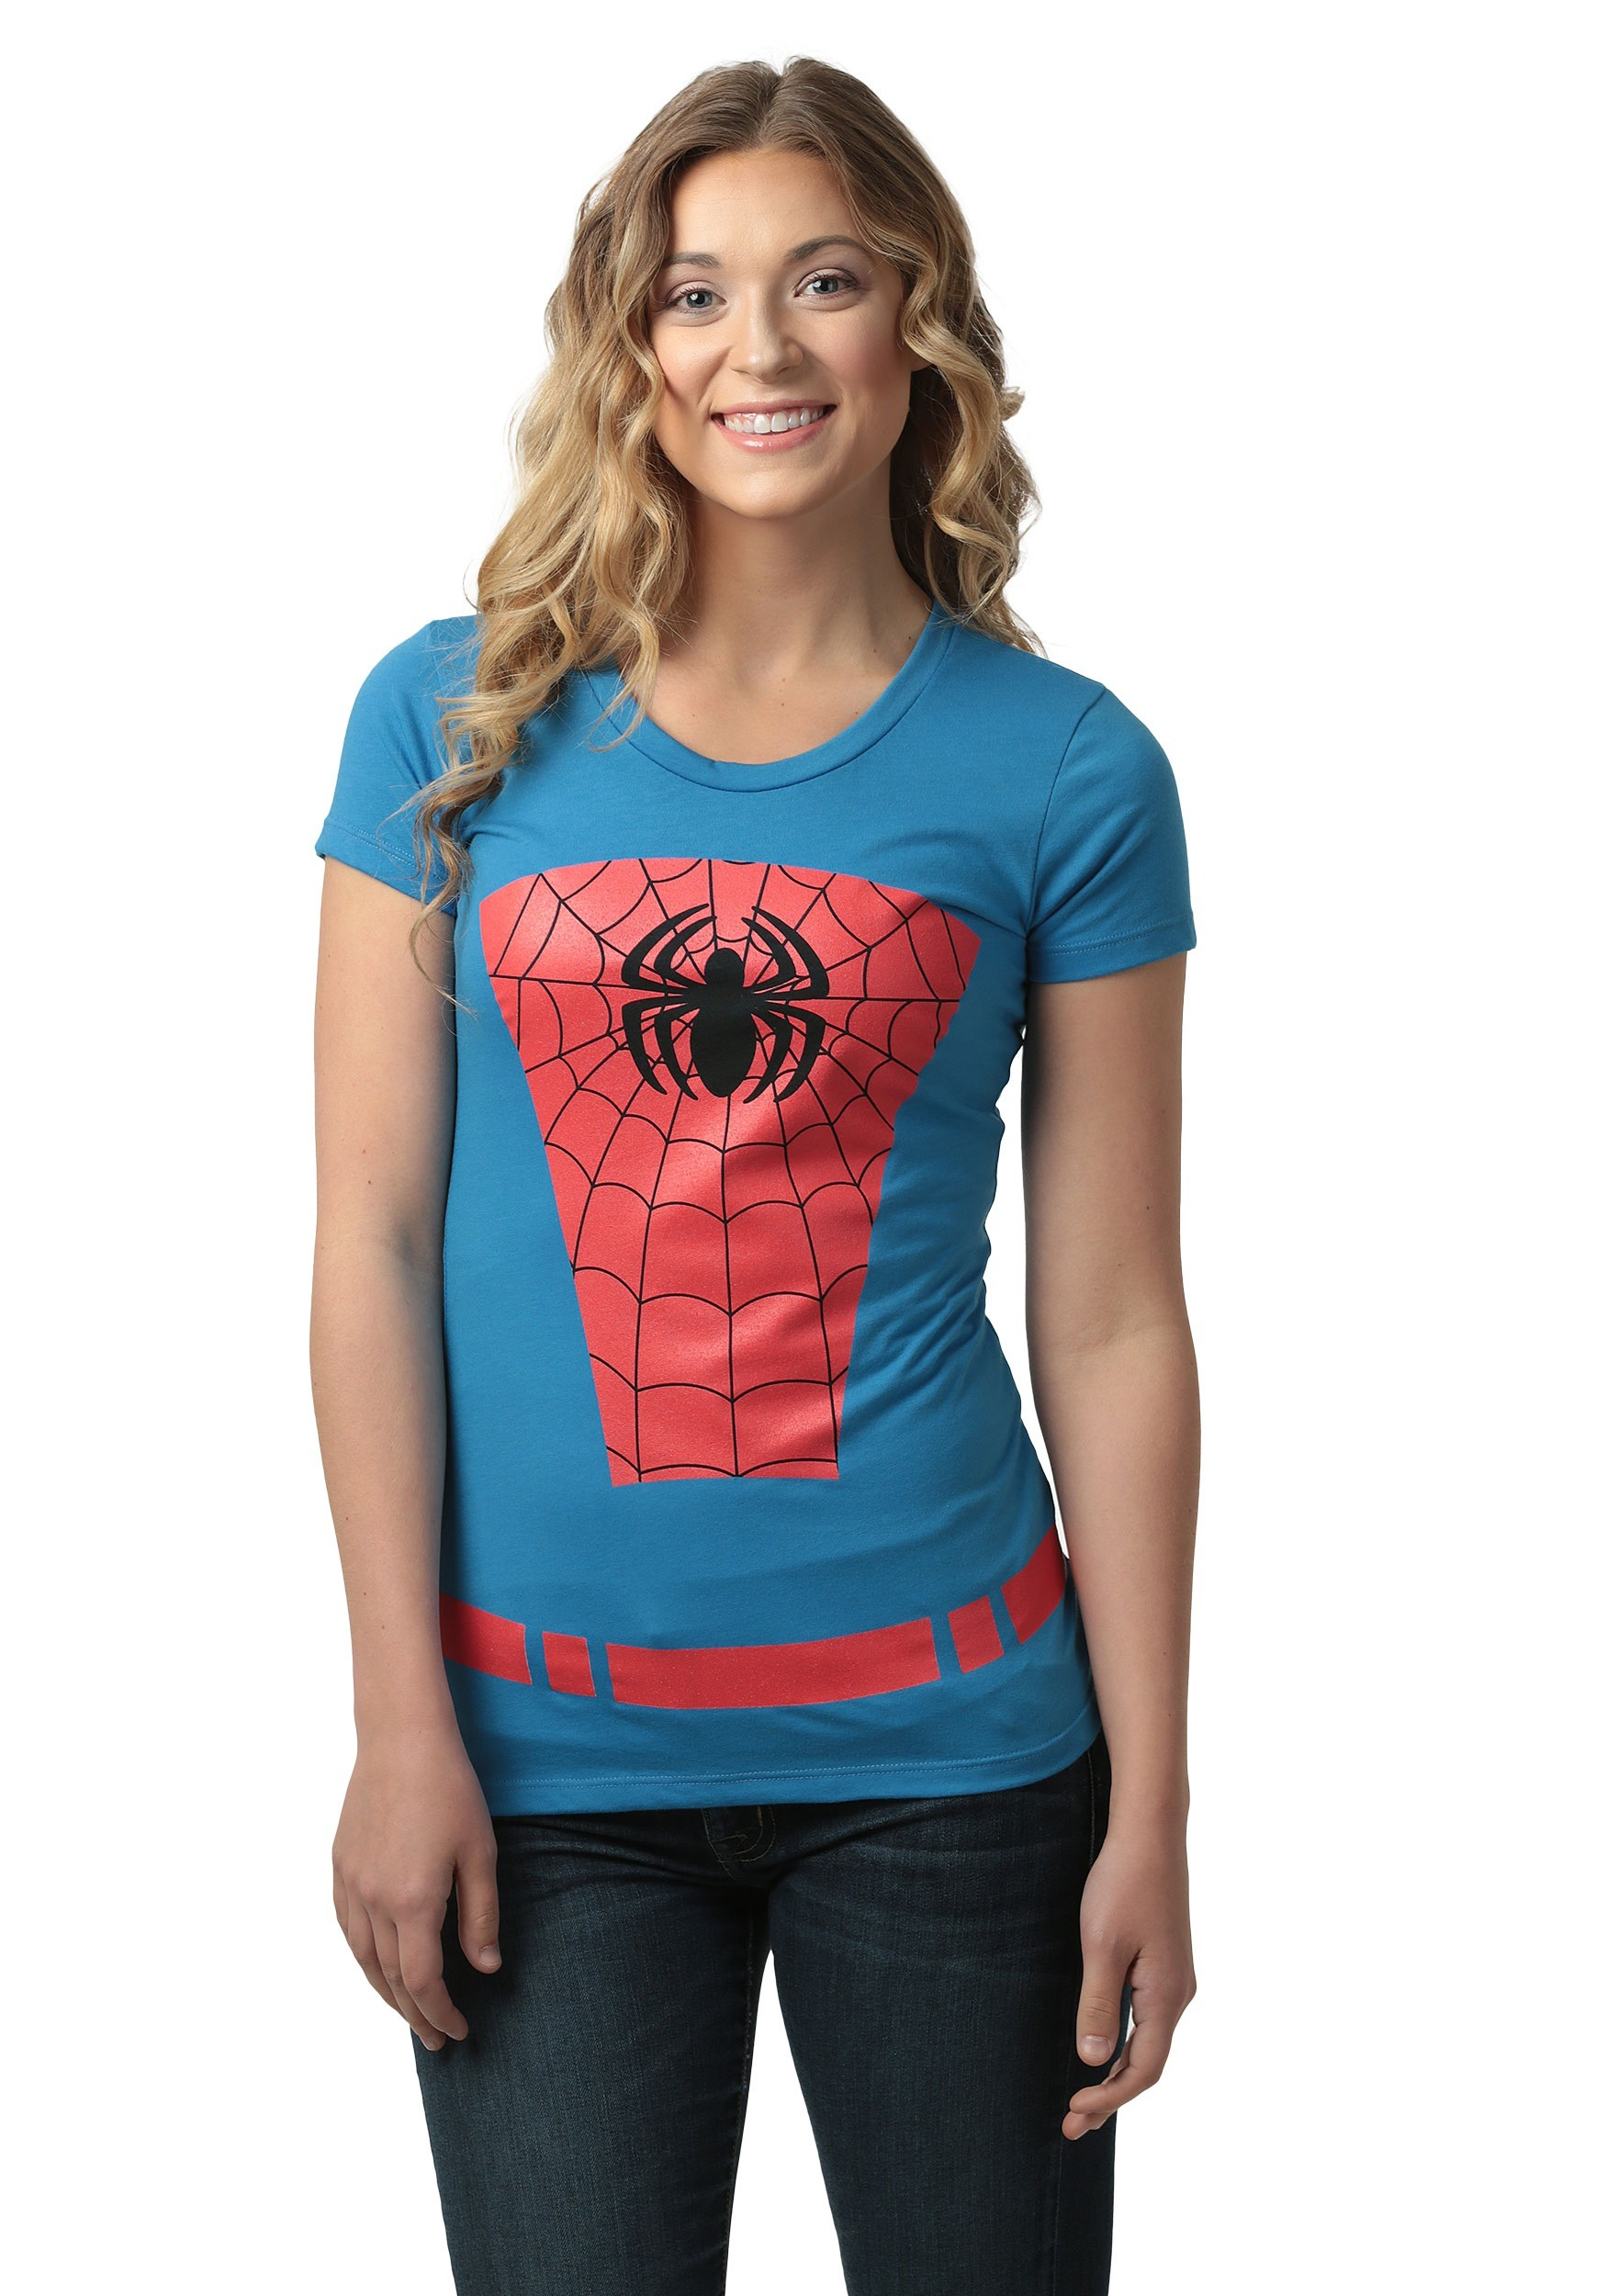 Diy halloween yard decorations - Womens Belted Spider Man Costume Tshirt